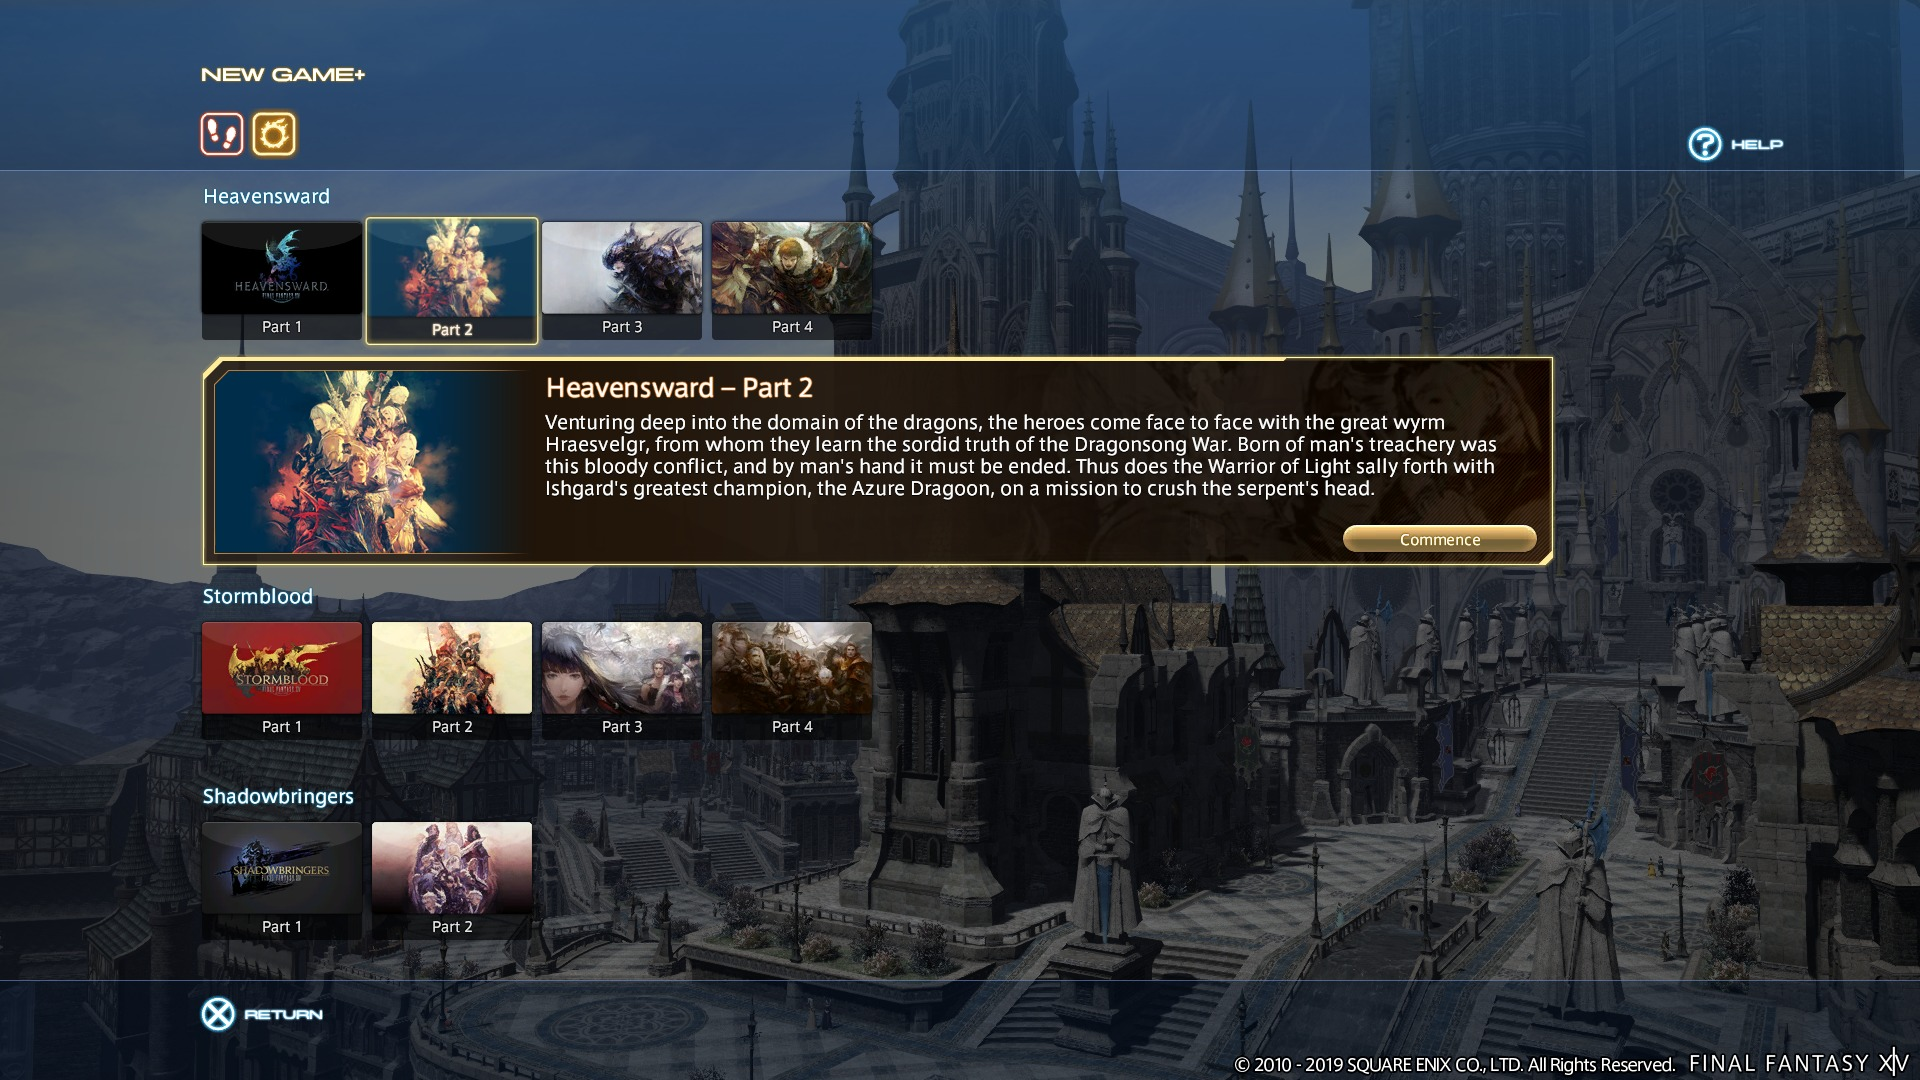 ff14 new game+